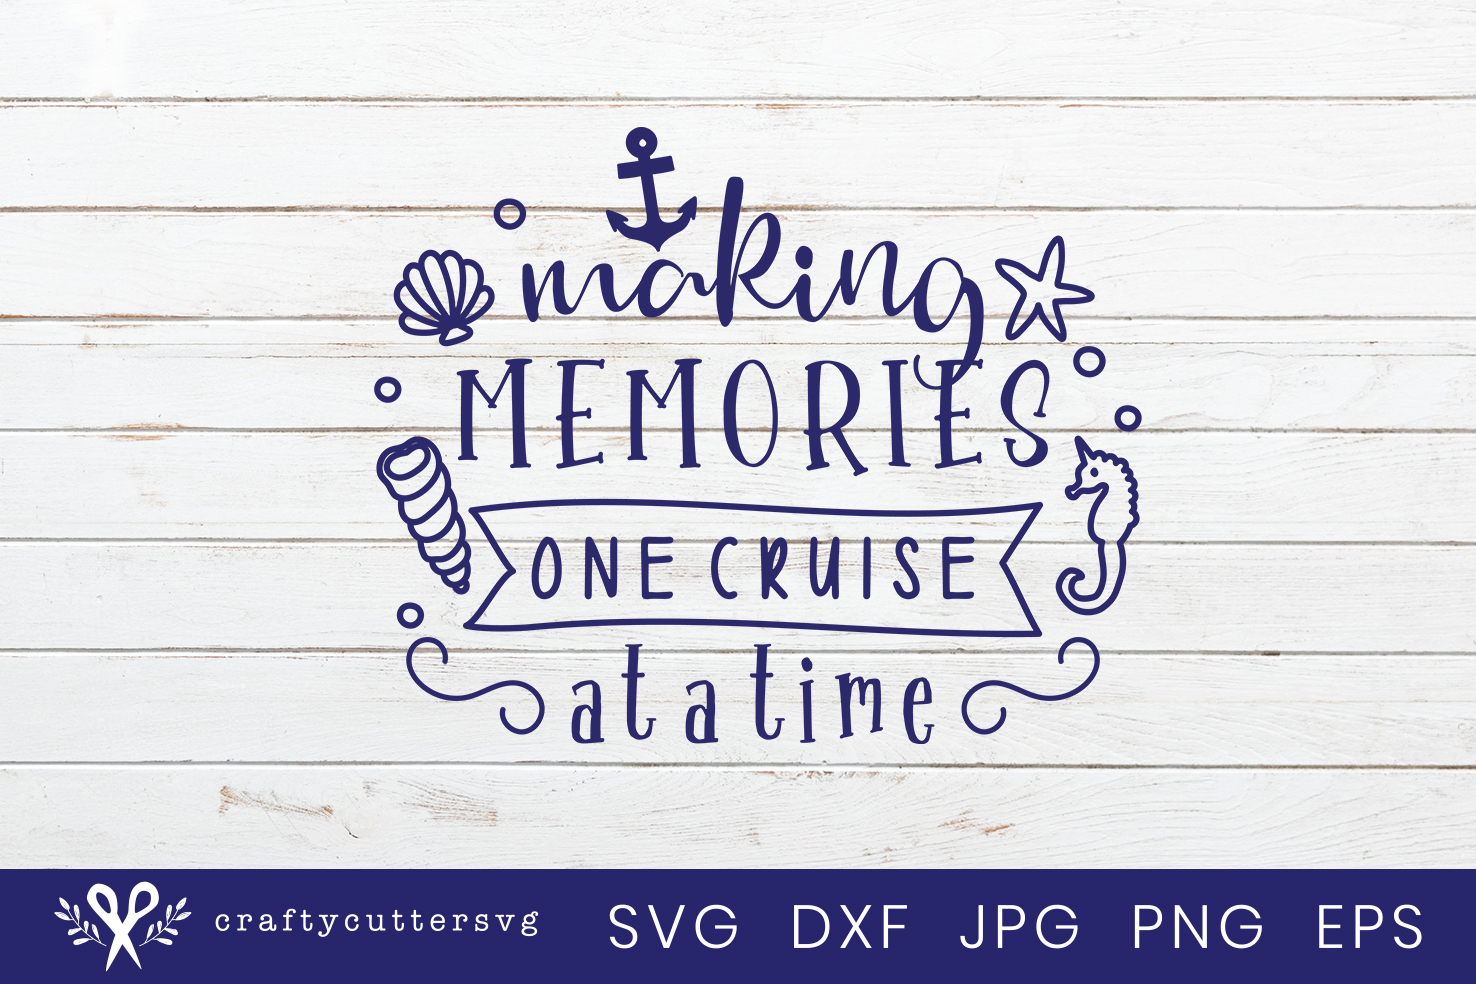 Making memories one cruise at a time Svg Cut File Clipart example image 2